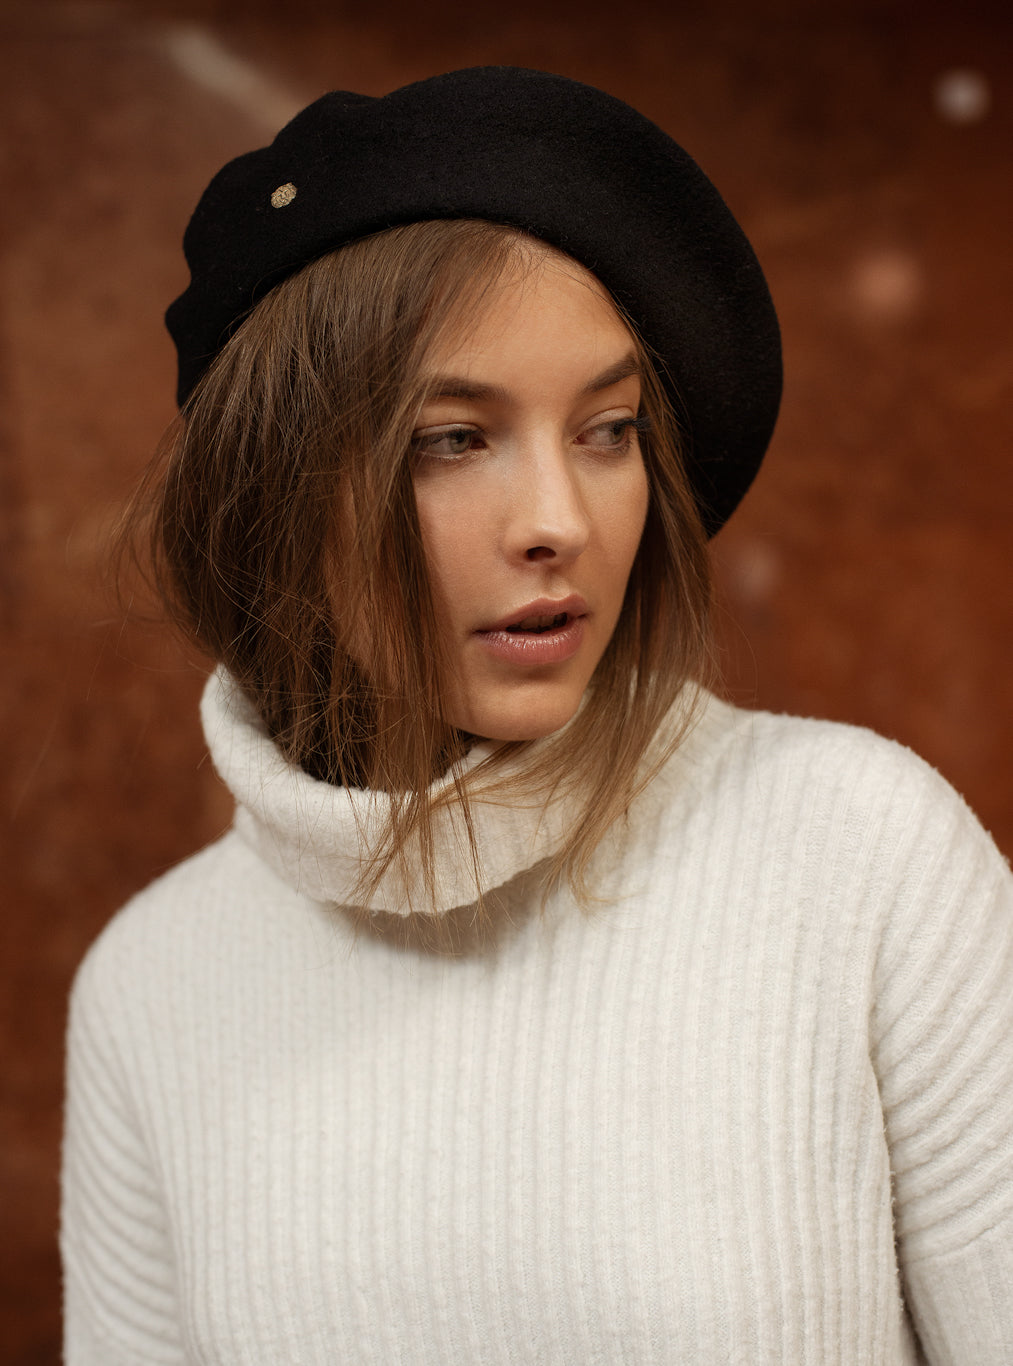 TAU Paris black beret hat best quality pure wool gyapjú barett designed in Budapest womanswear accessory winter chic look with lion pin lookbook picture